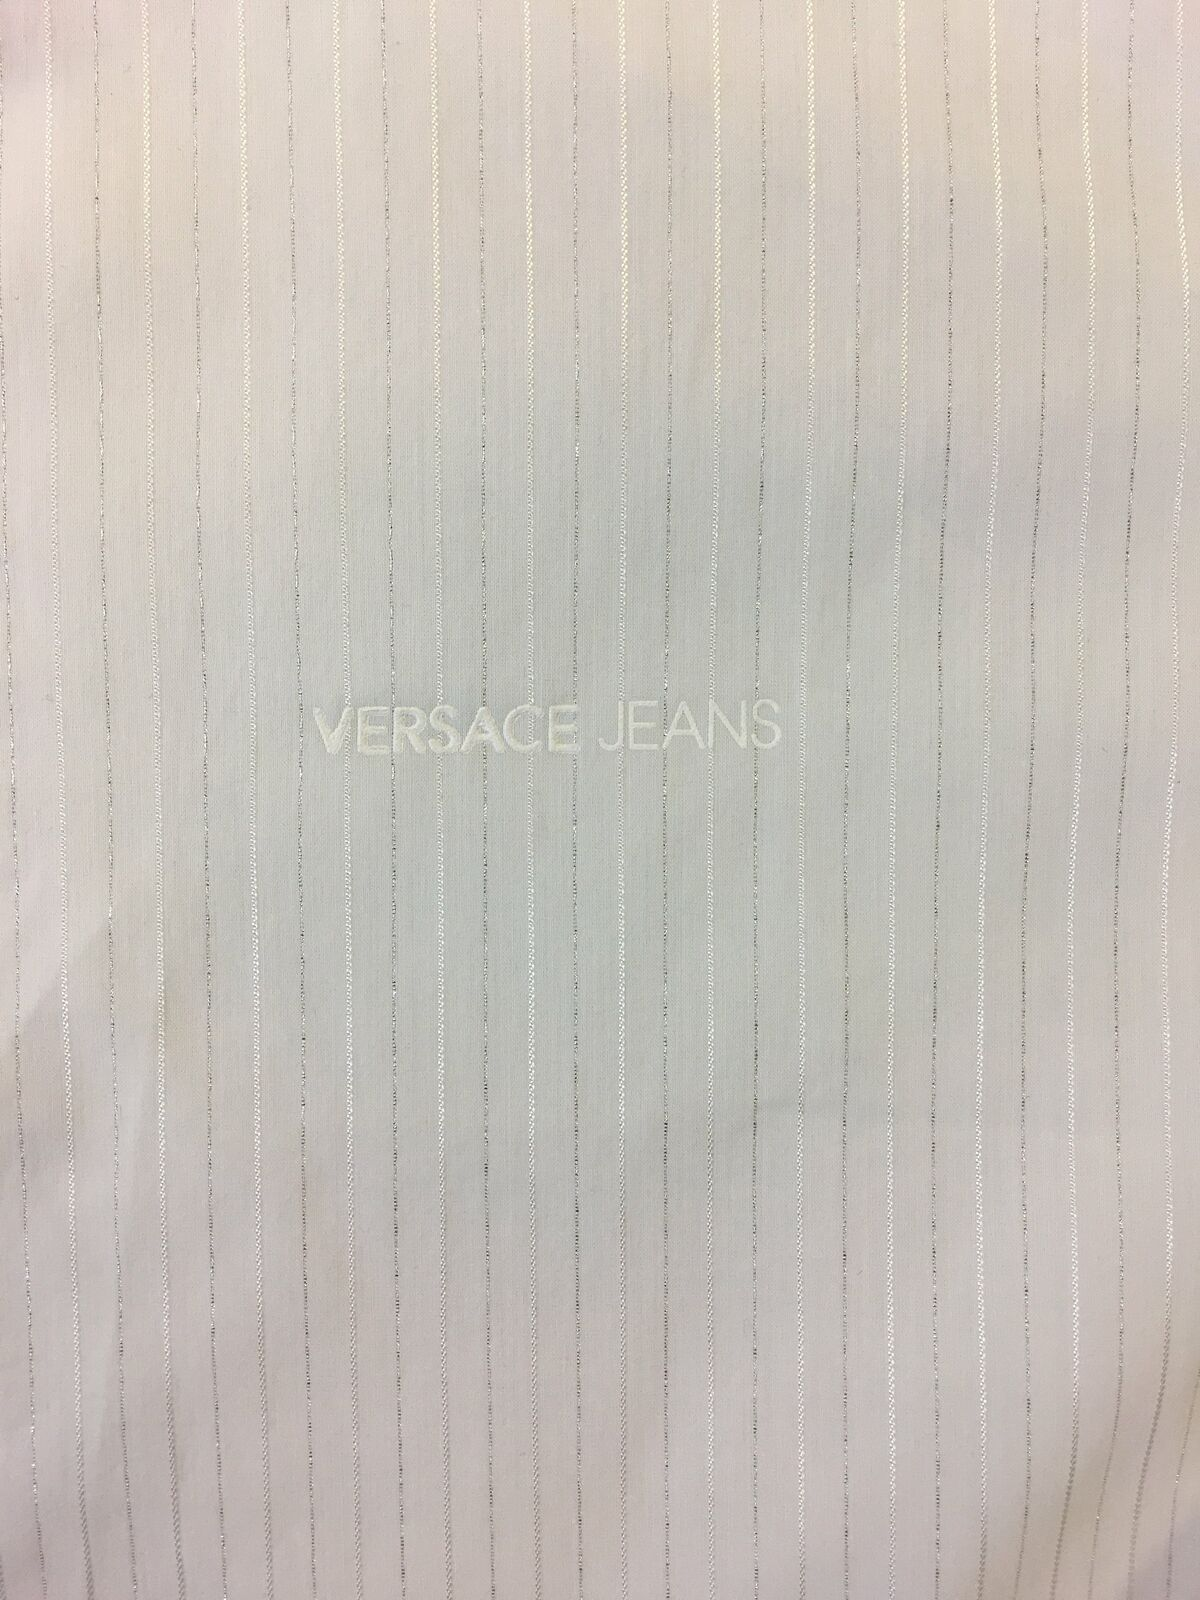 Versace-Jeans-039-Elegant-039-slim-fit-shirt-in-white-and-silver-stripe-rrp-179-99 thumbnail 6